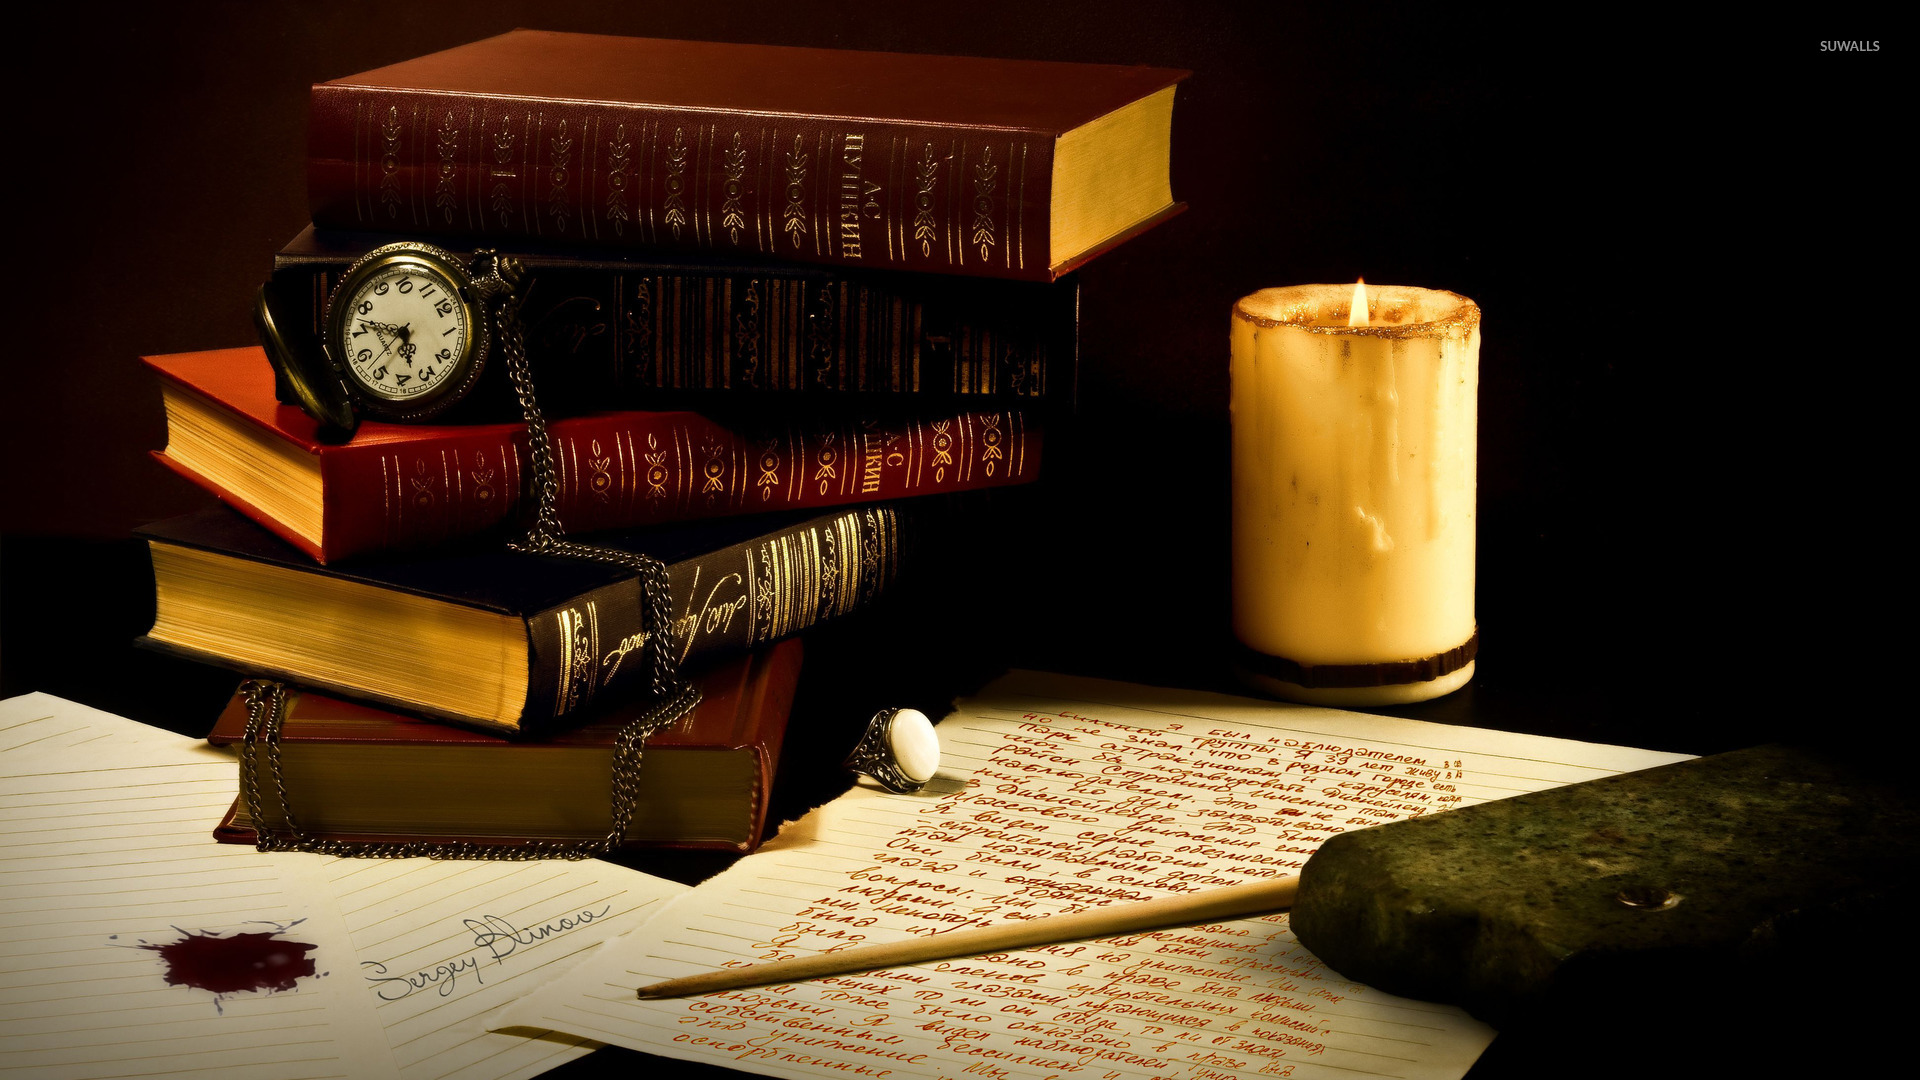 Old Books 3 Wallpaper Photography Wallpapers 37393